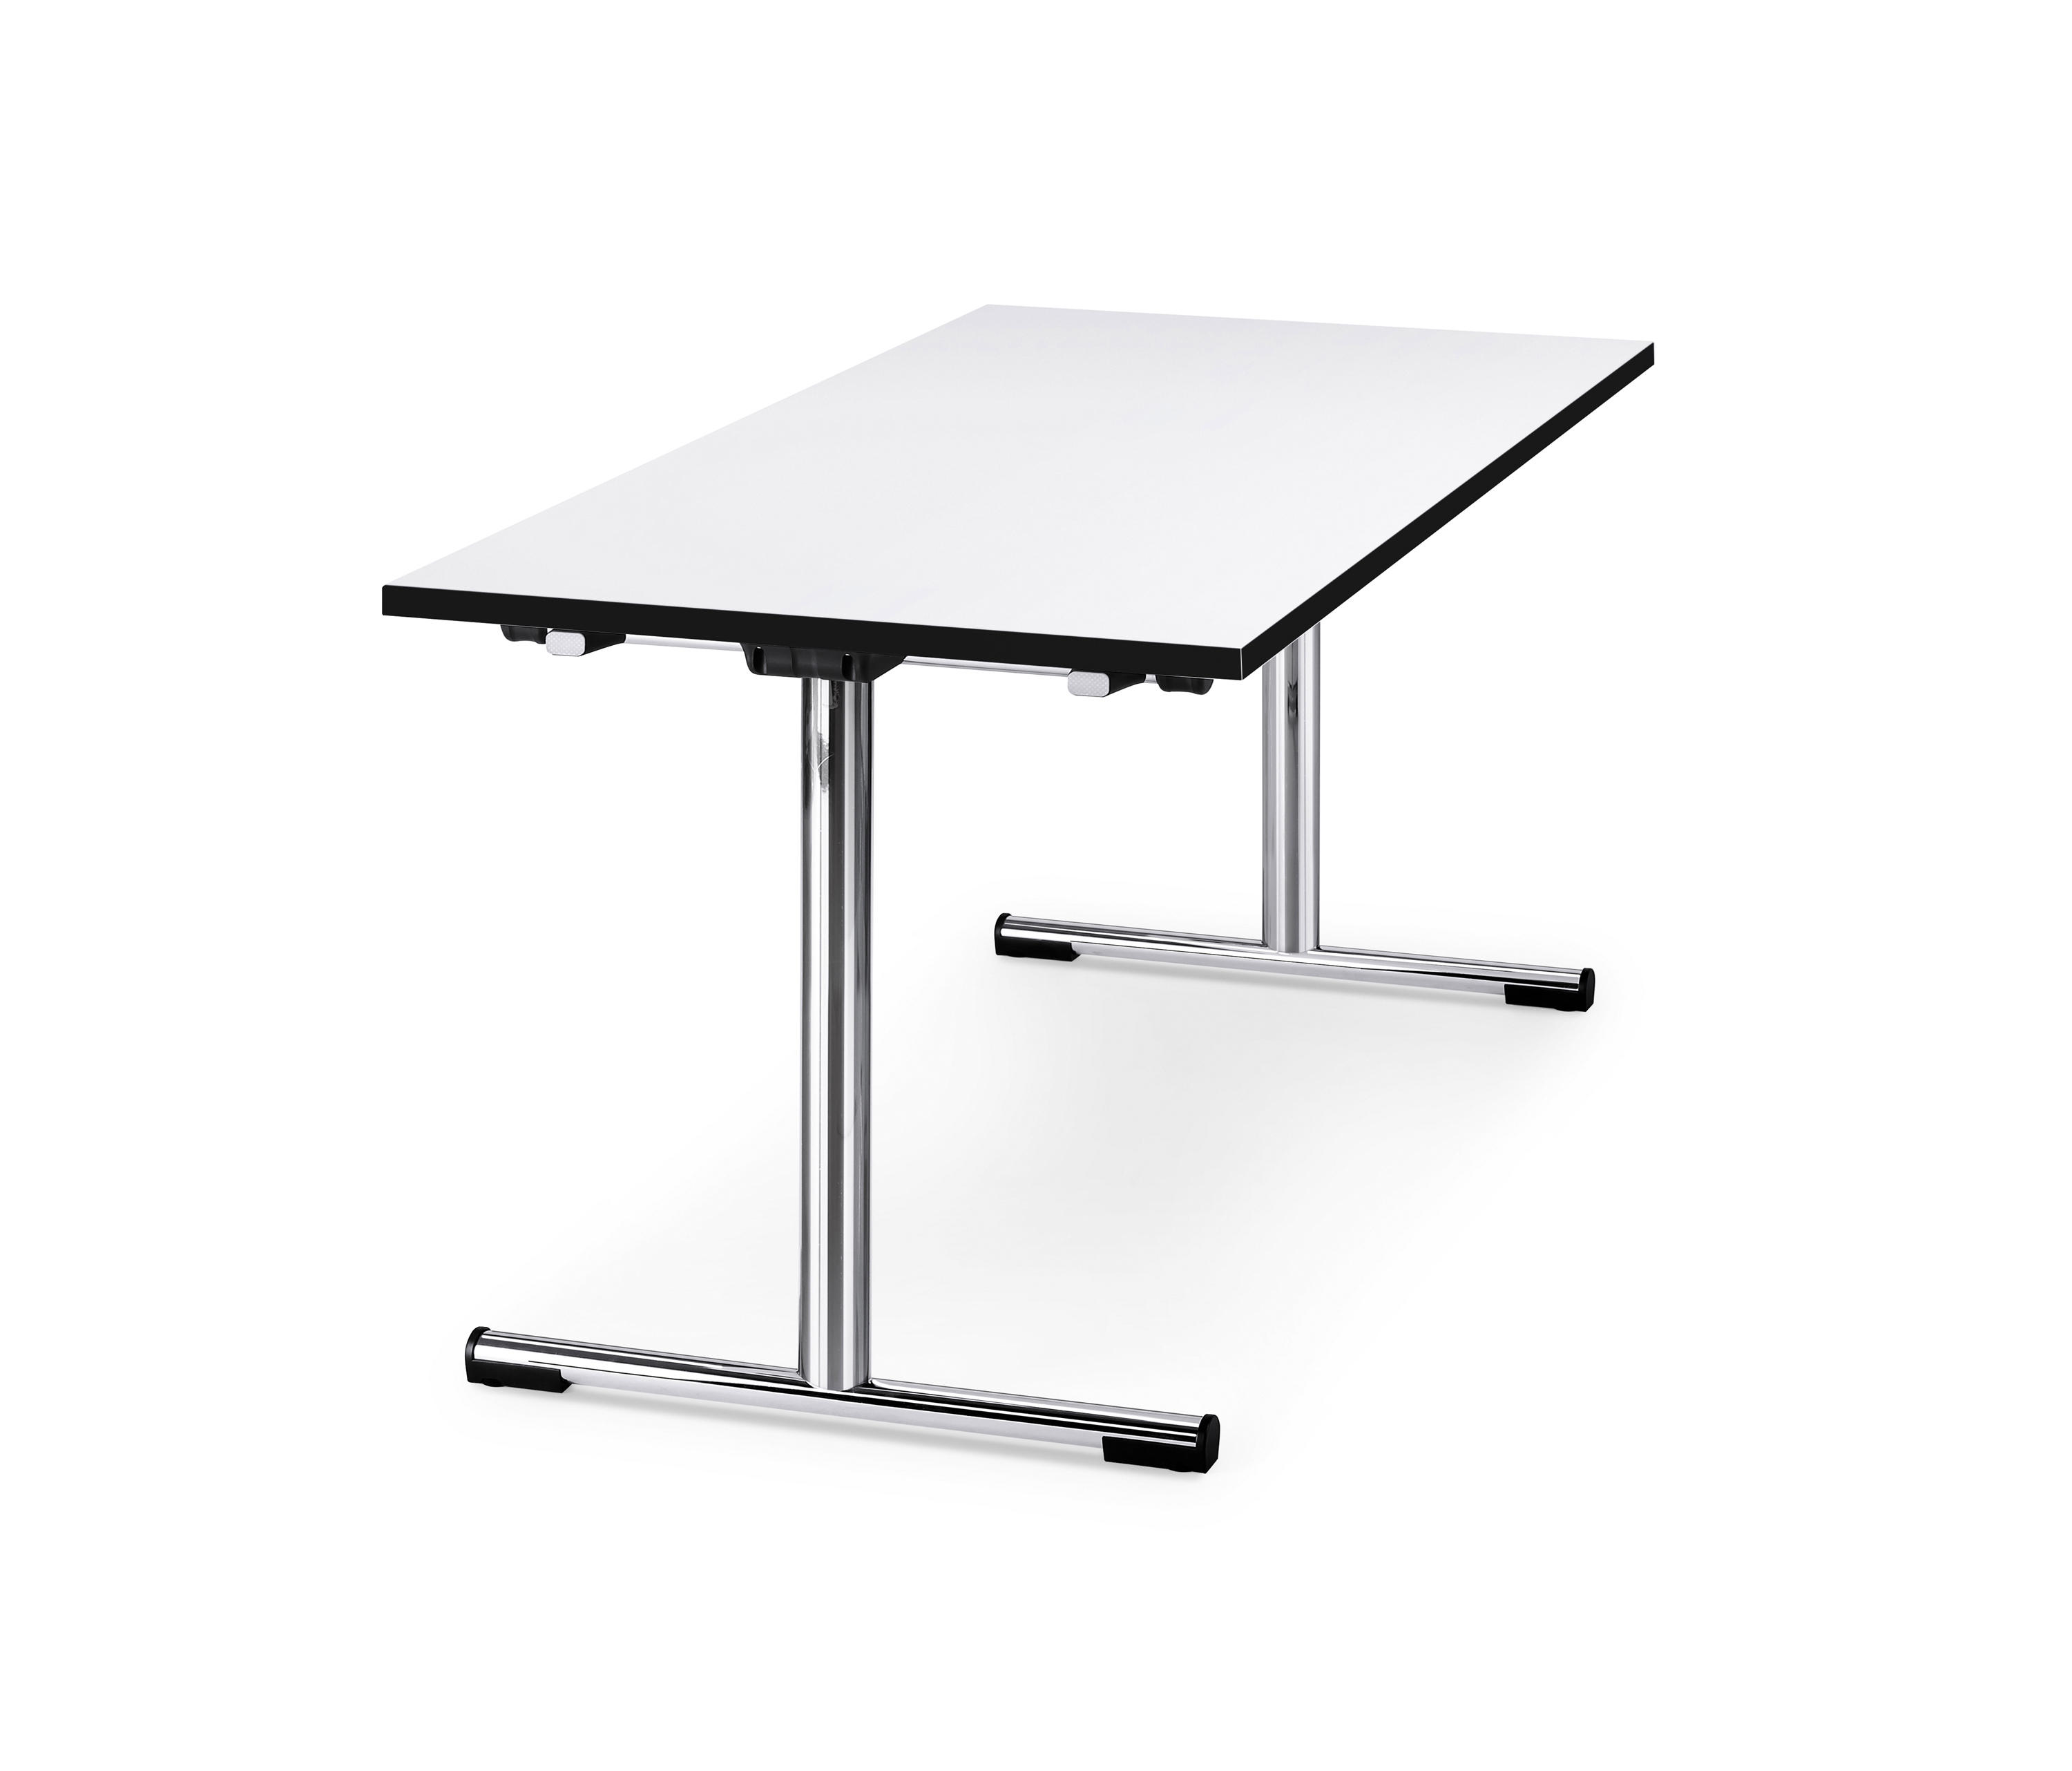 FORMEOIS1 7012T - Multipurpose tables from Interstuhl Büromöbel GmbH ...